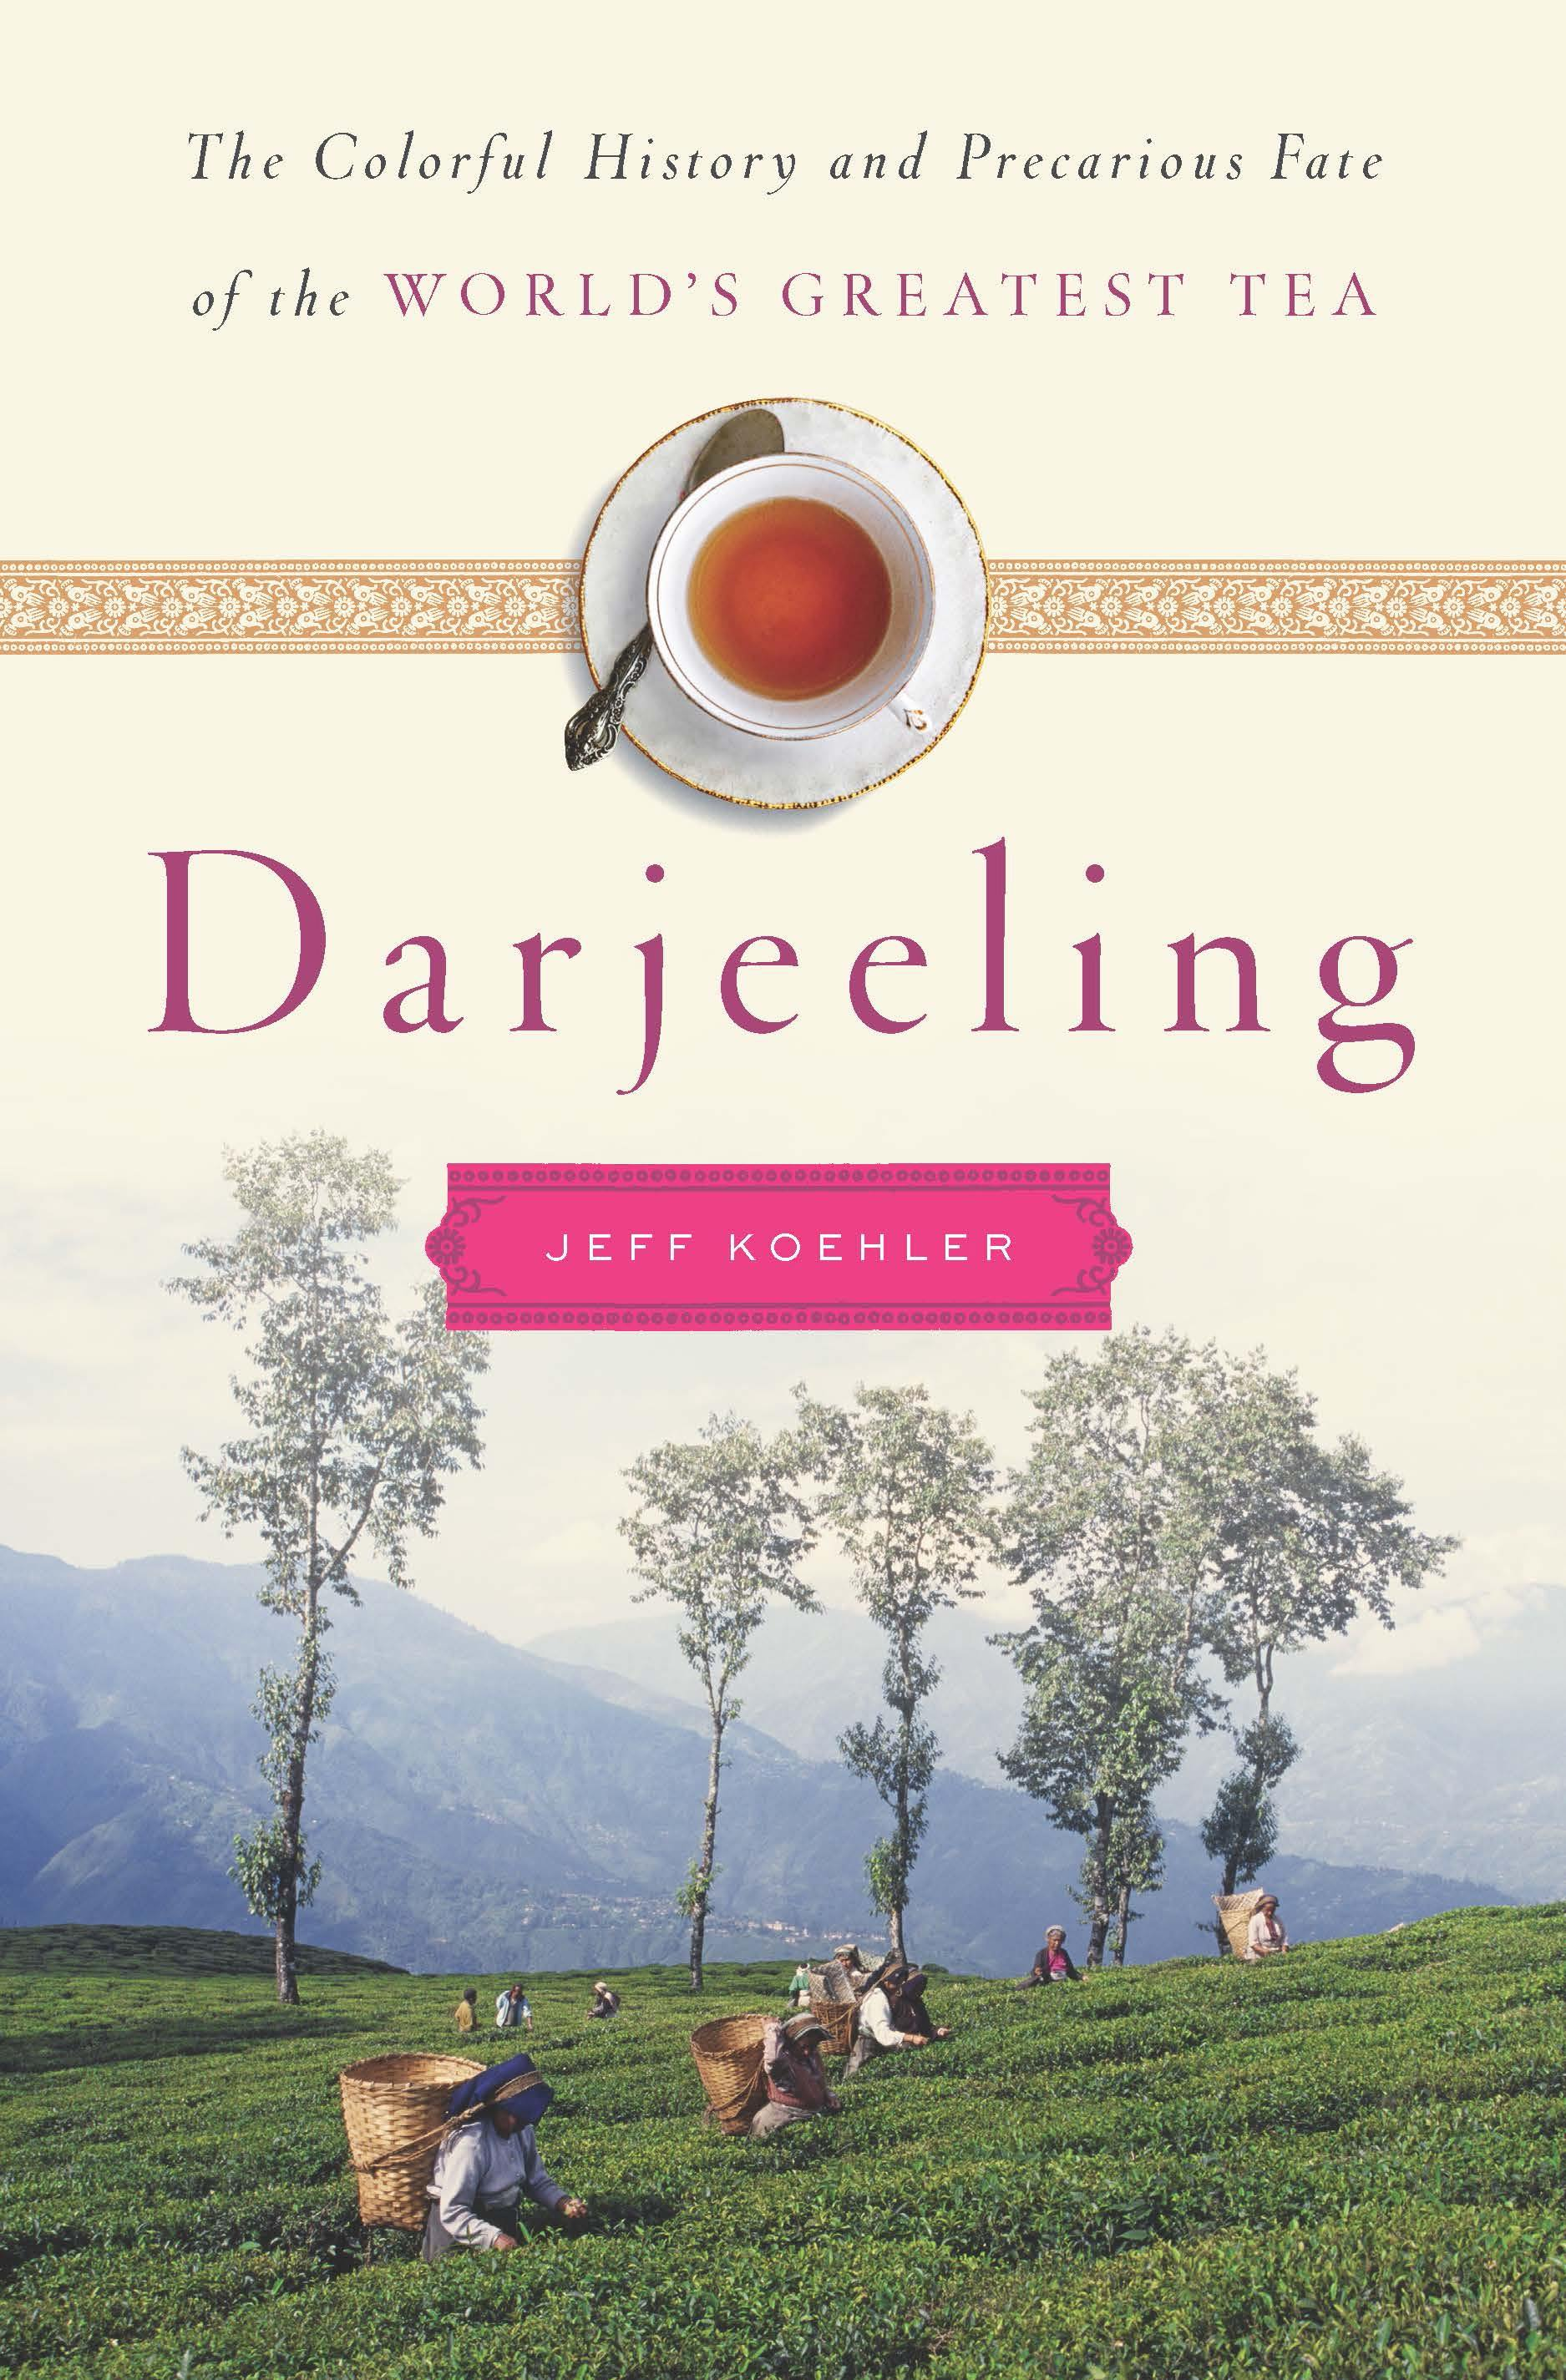 darjeeling-cover-small.jpg